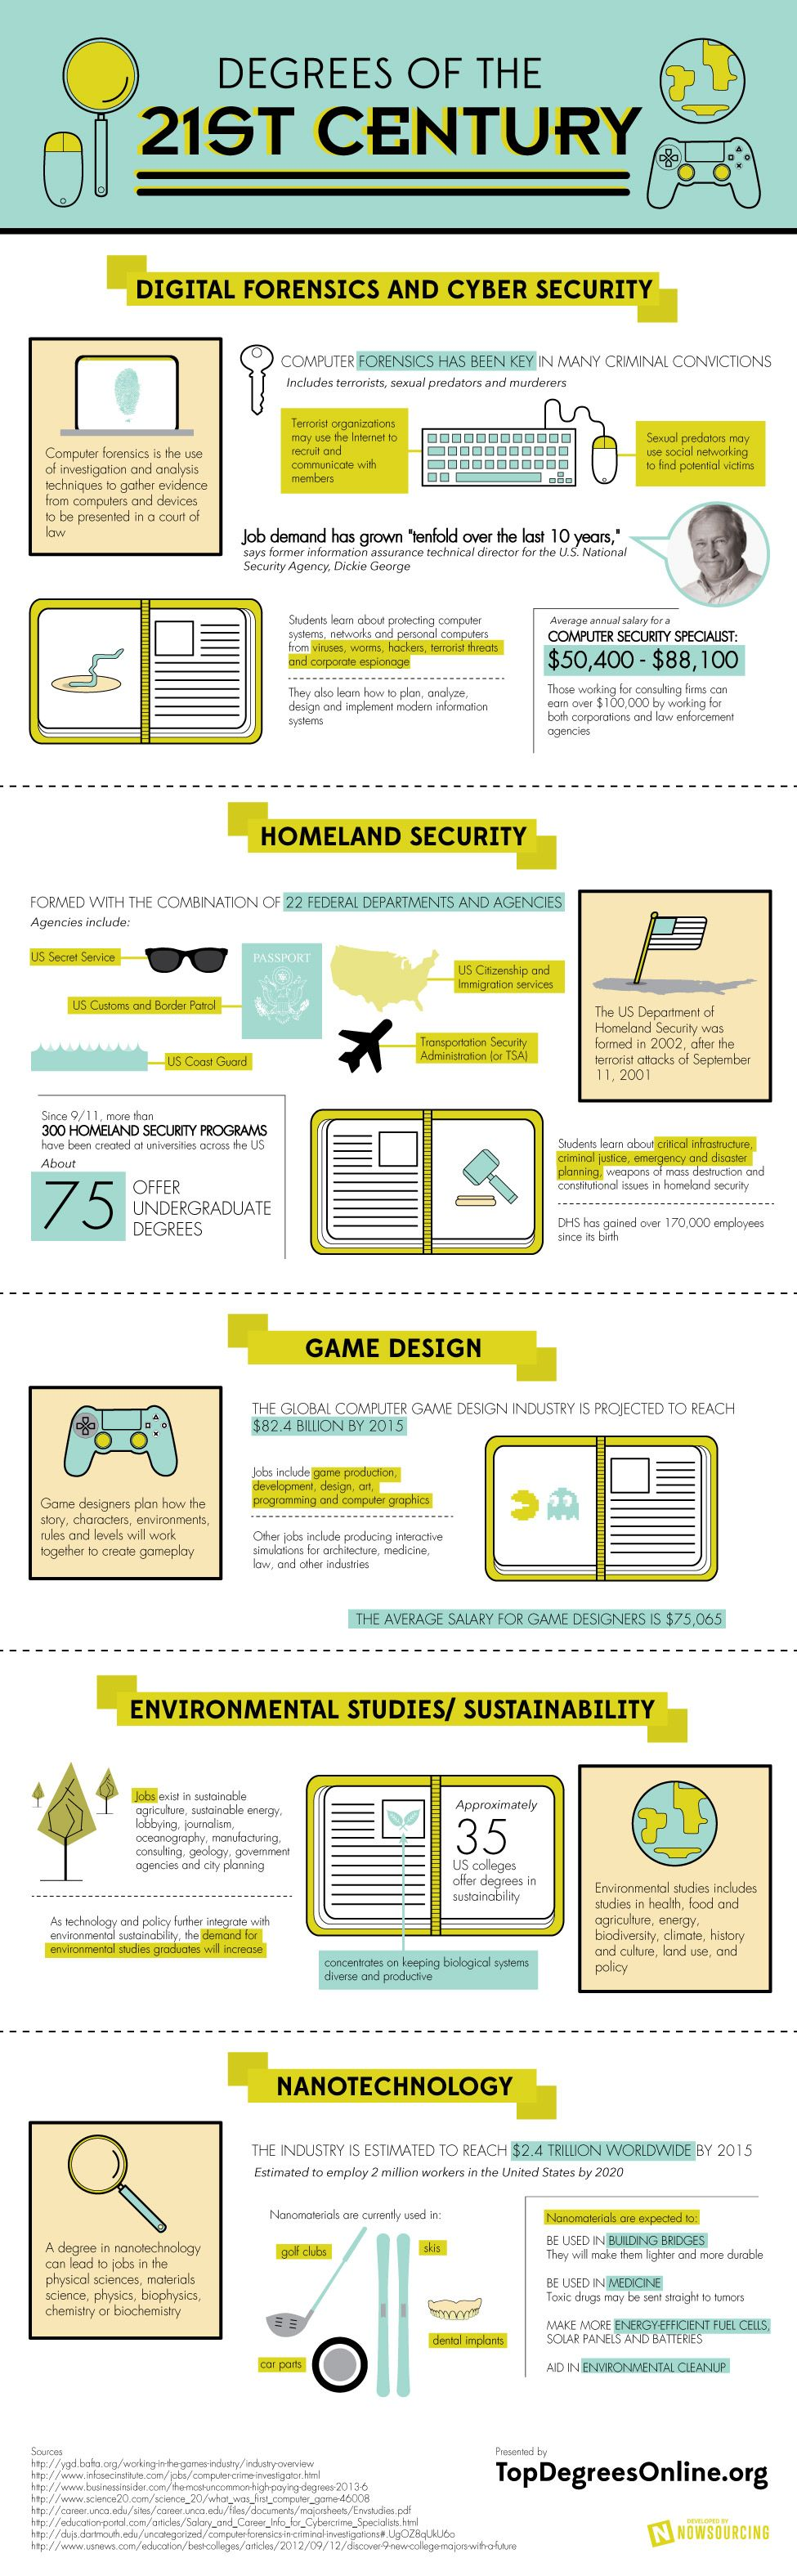 From Cyber Security To Video Game Design The College Degrees Of The 21st Century Infographic Educational Infographic College Degree Business Education